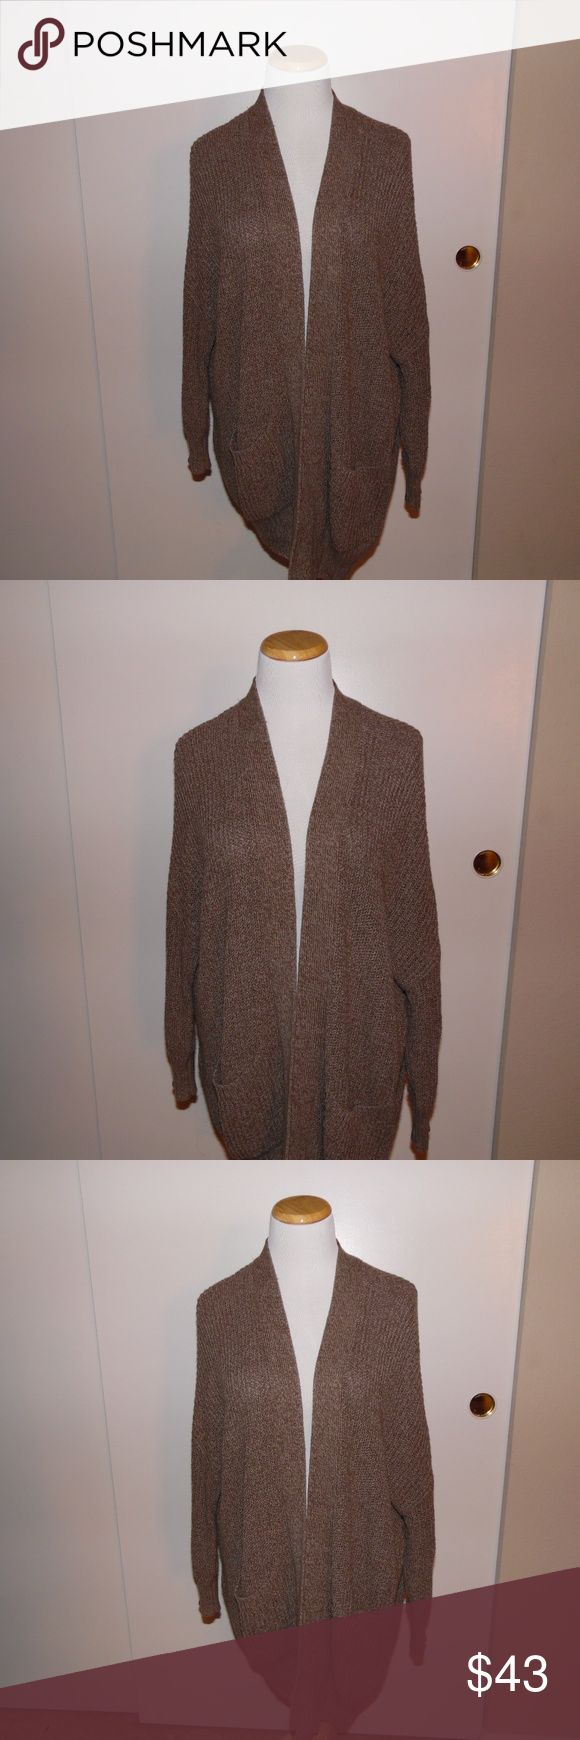 Urban Outfitters Brown Cardigan In great condition Urban Outfitters BDG Brown Cardigan. Urban Outfitters Sweaters Cardigans